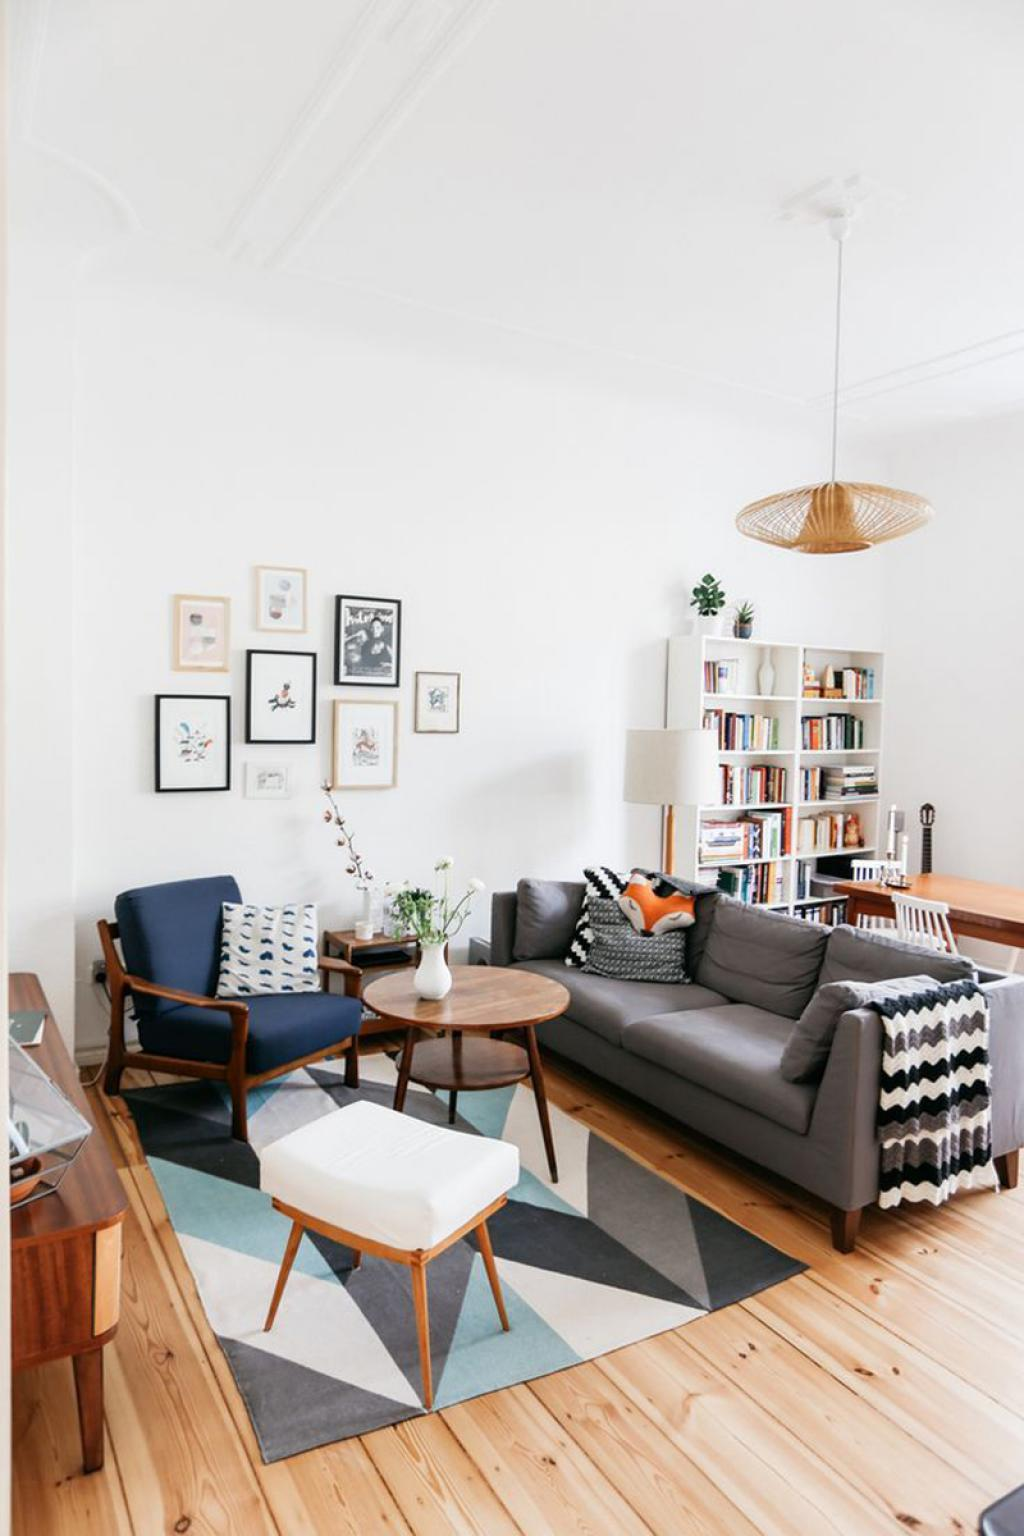 Design You Room: We Found The Scandinavian Living Room Ideas You Were